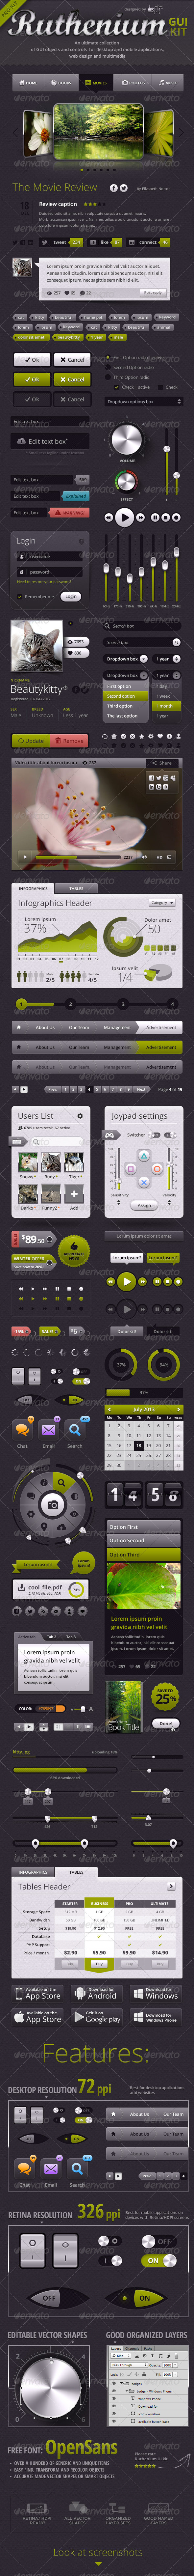 GraphicRiver Ruthenium GUI Kit 3692856